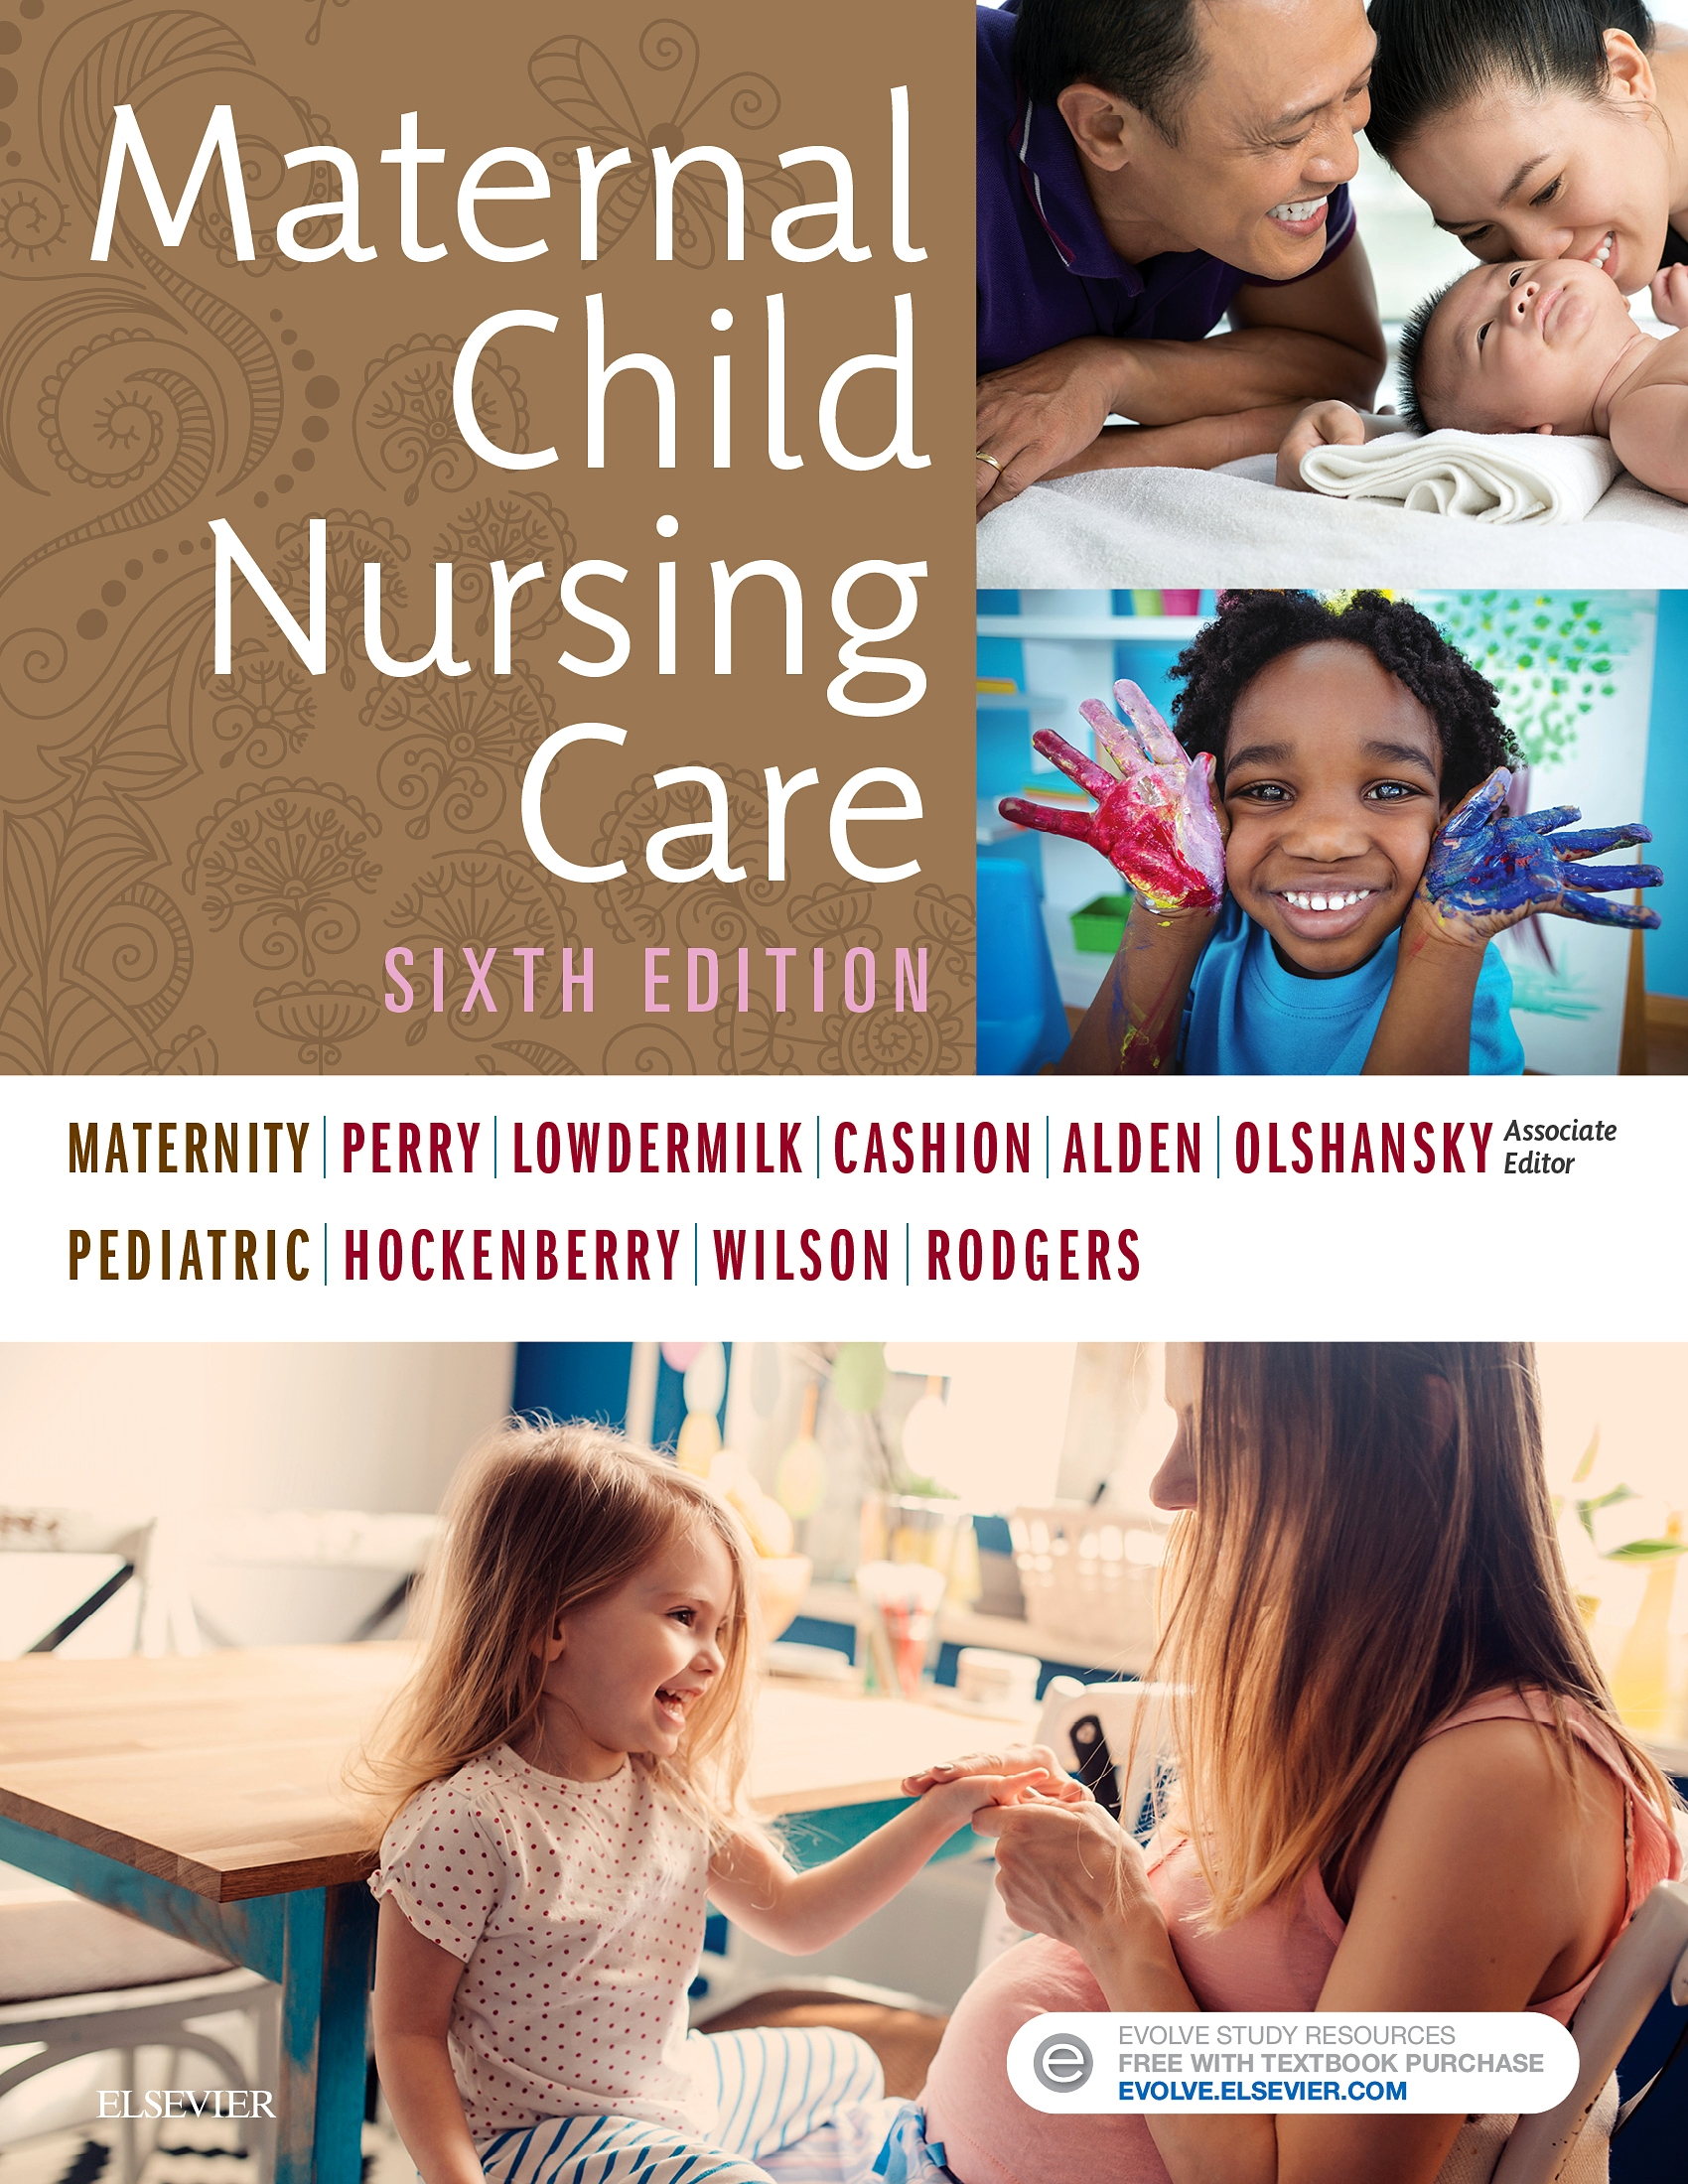 Evolve Resources for Maternal Child Nursing Care, 6th Edition